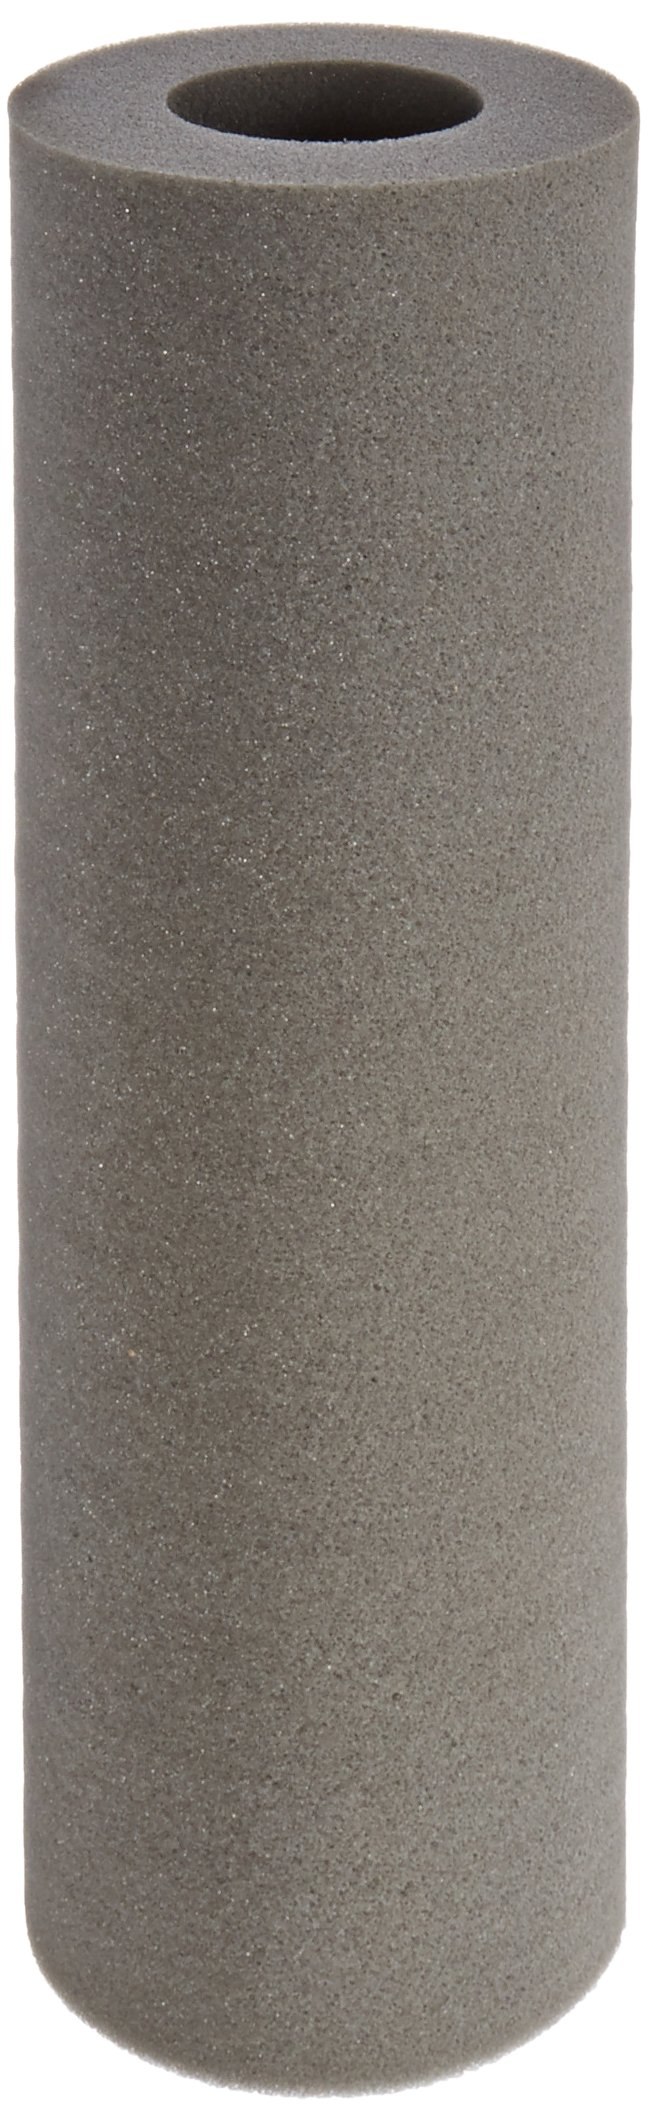 Nortech N686 Exhaust Silencer Foam Insert